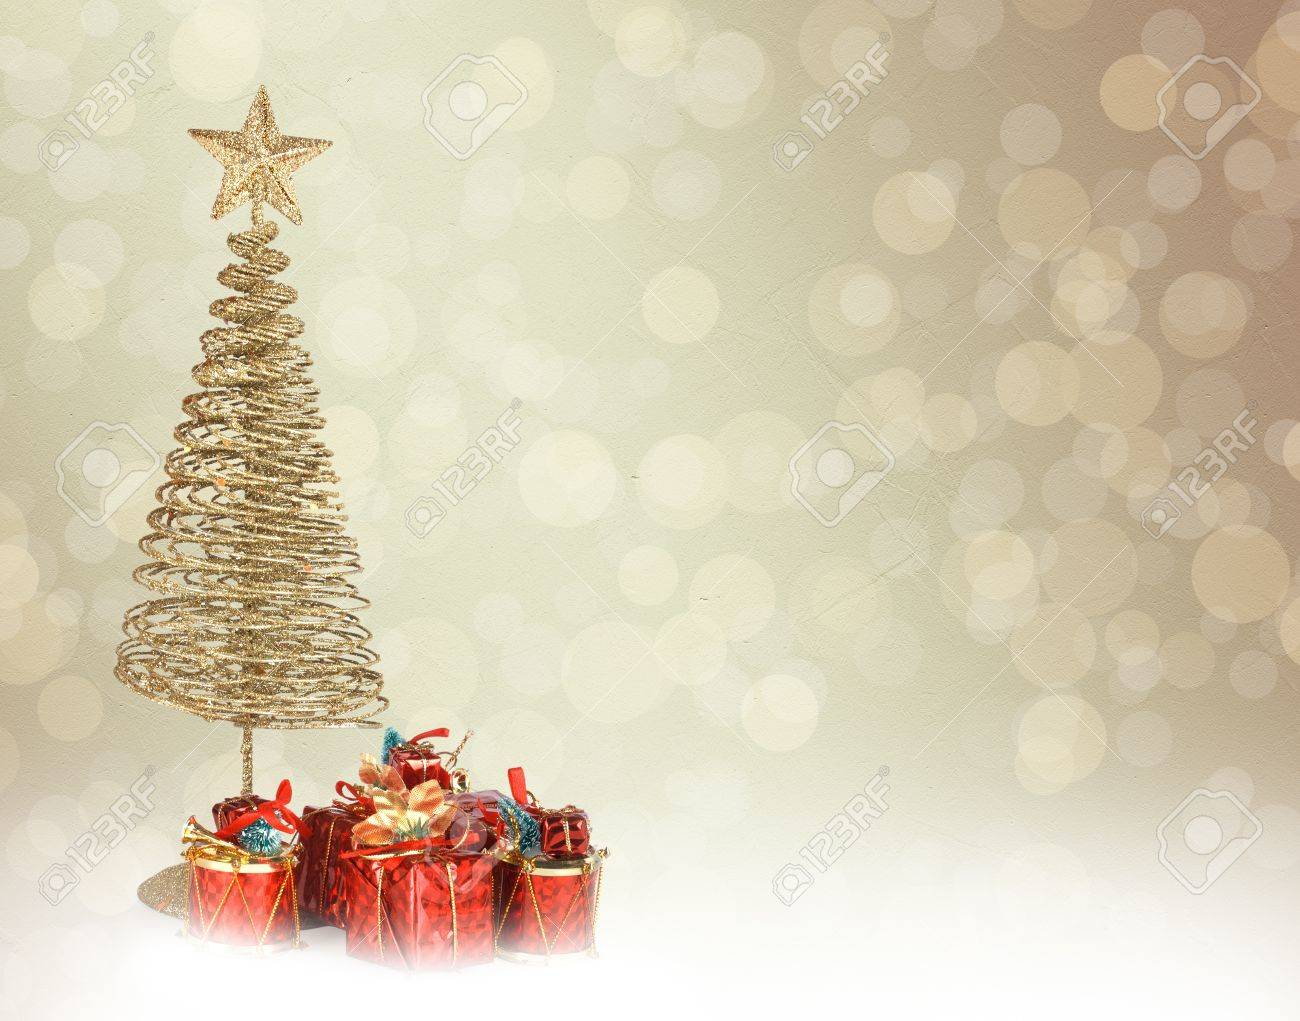 Christmas greeting card with gold metal firtree and presents on the abstract background Stock Photo - 16270409